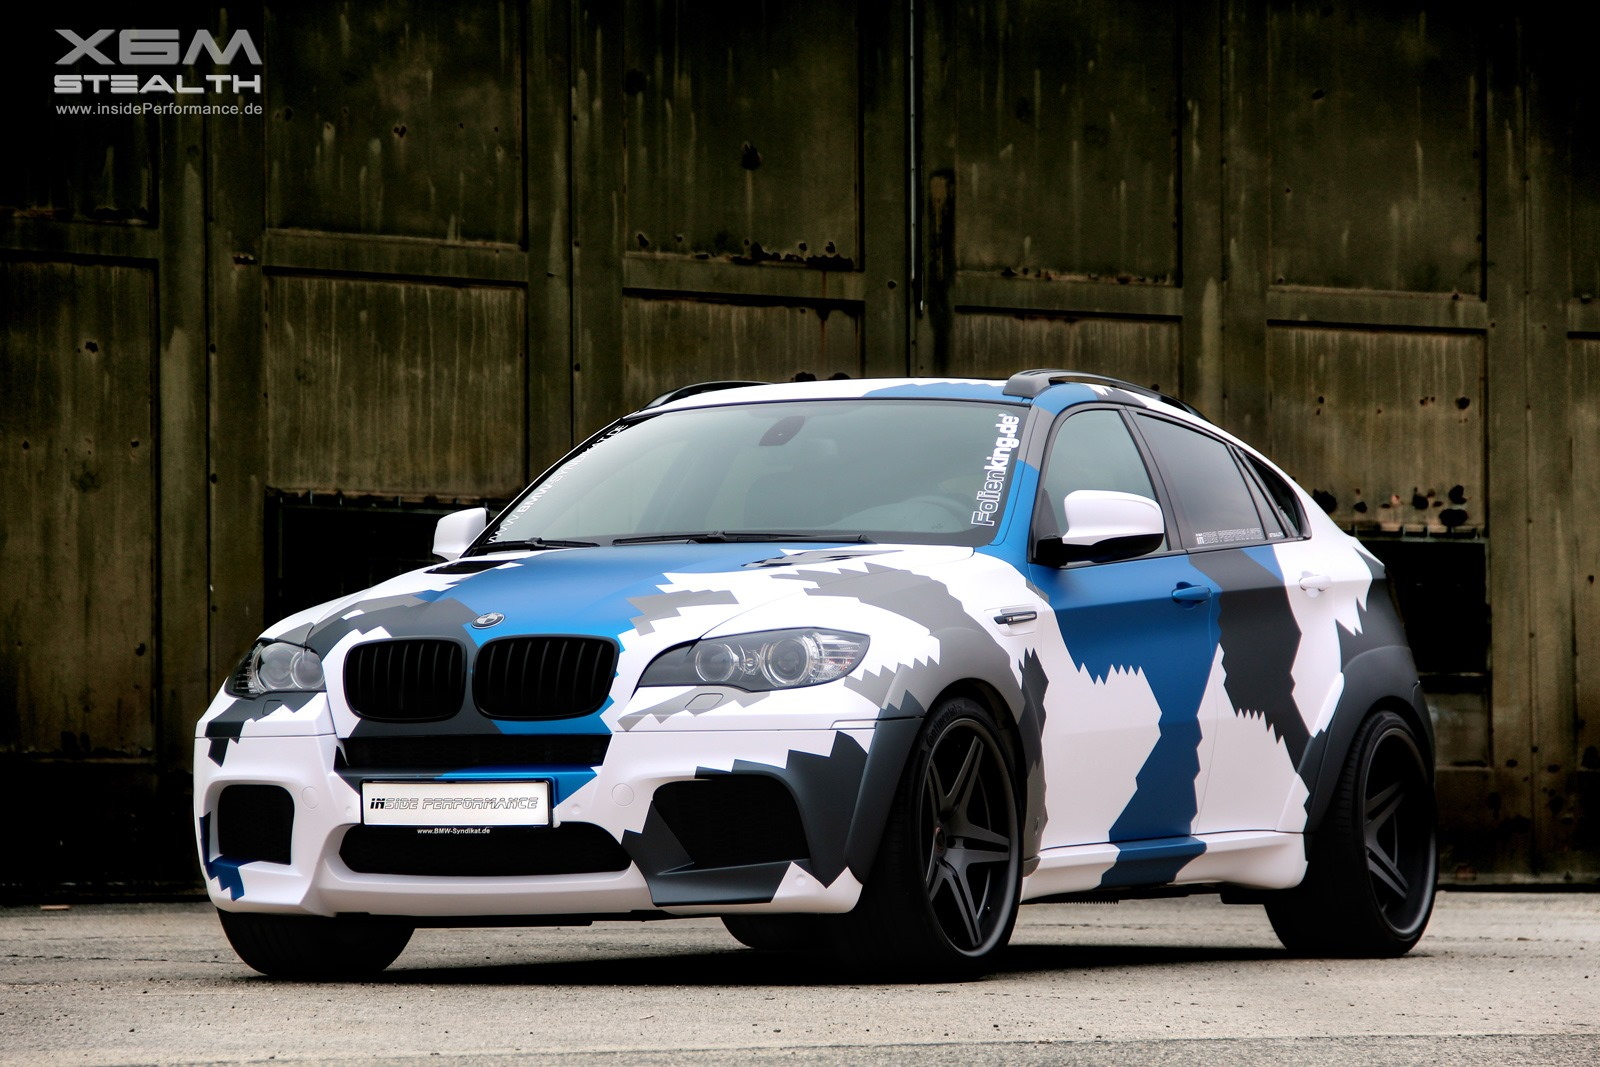 Inside Performance Presents Stealth Bmw X6 M Autoevolution